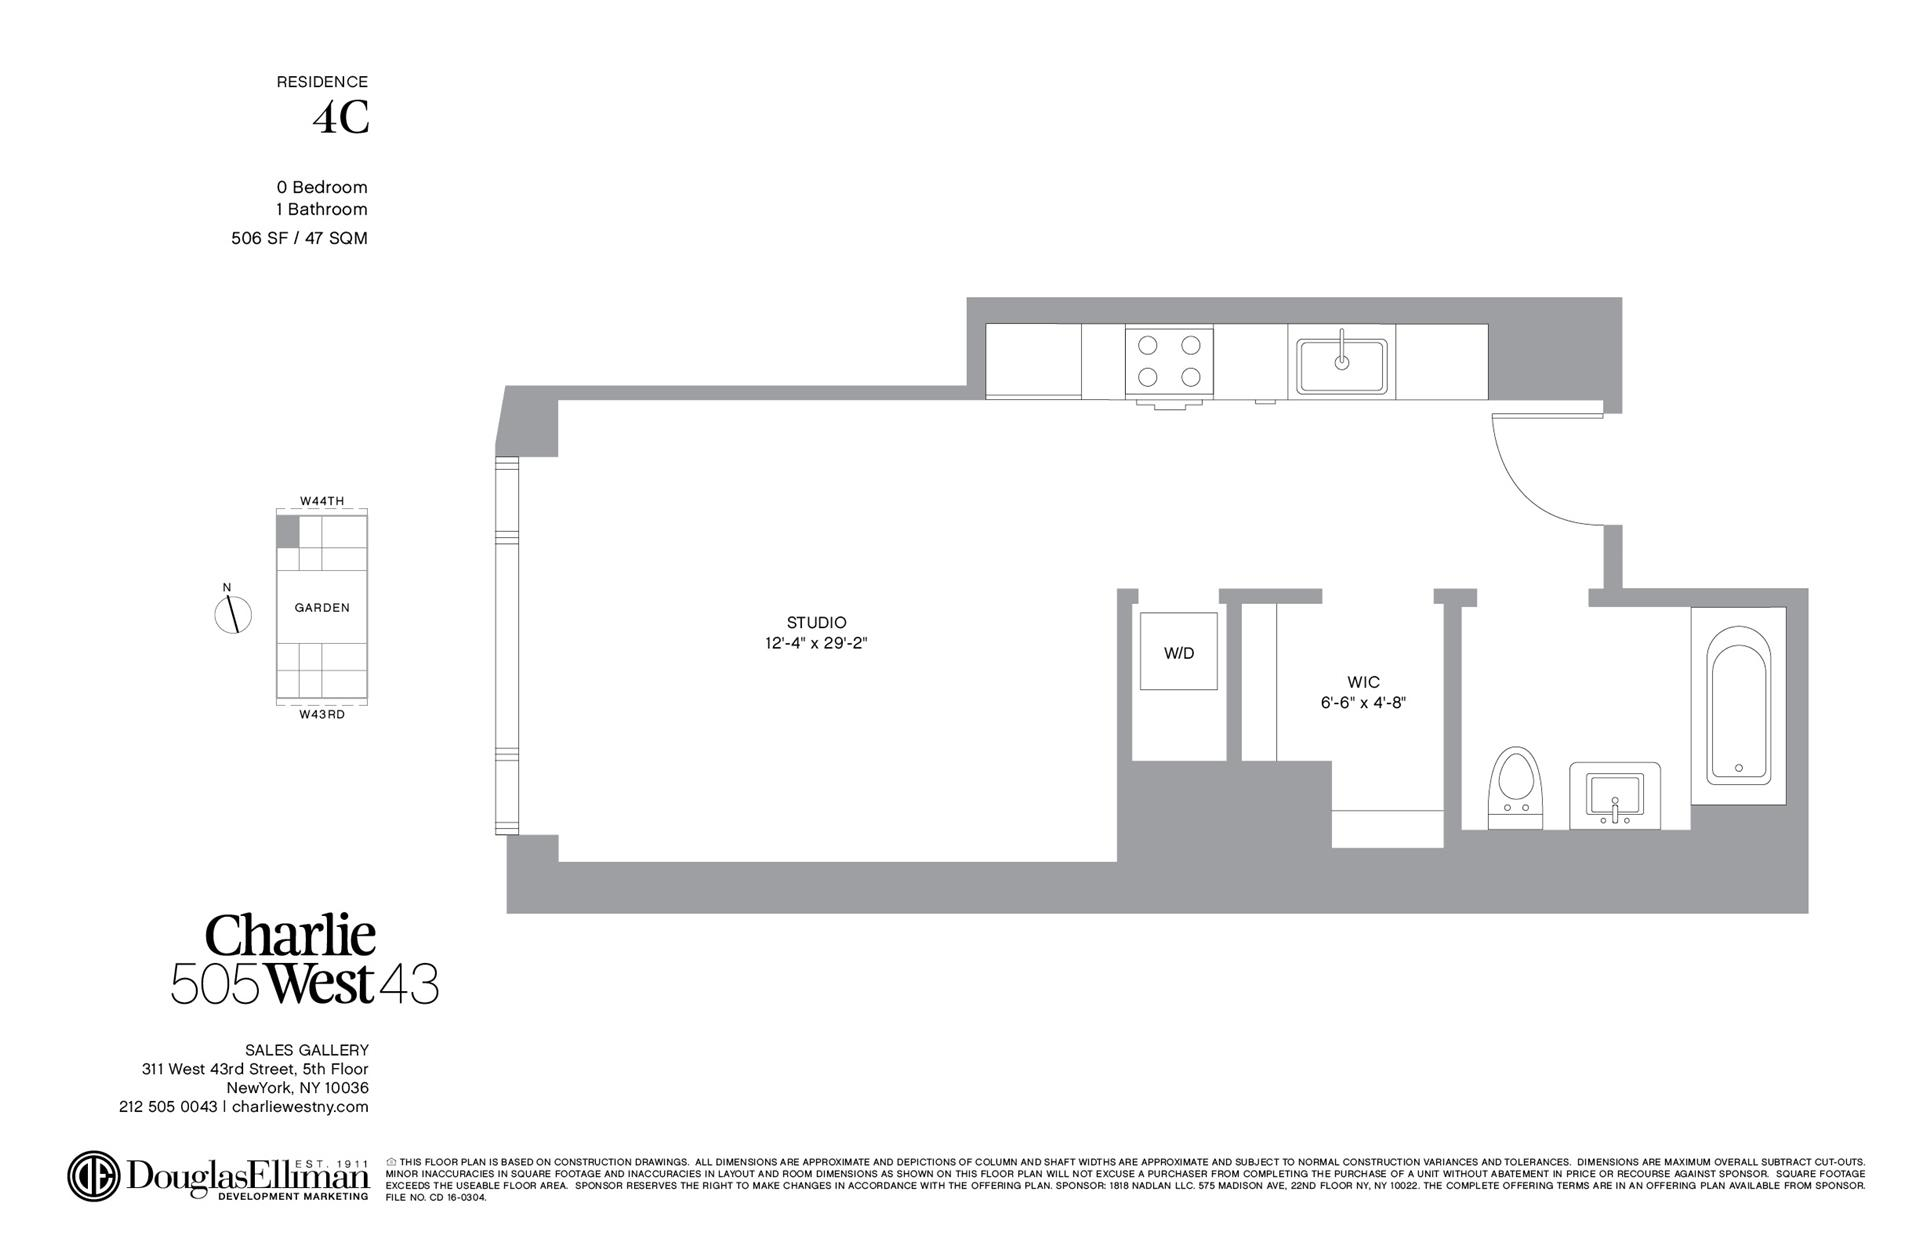 Floor plan of 505 West 43rd Street, 4C - Clinton, New York